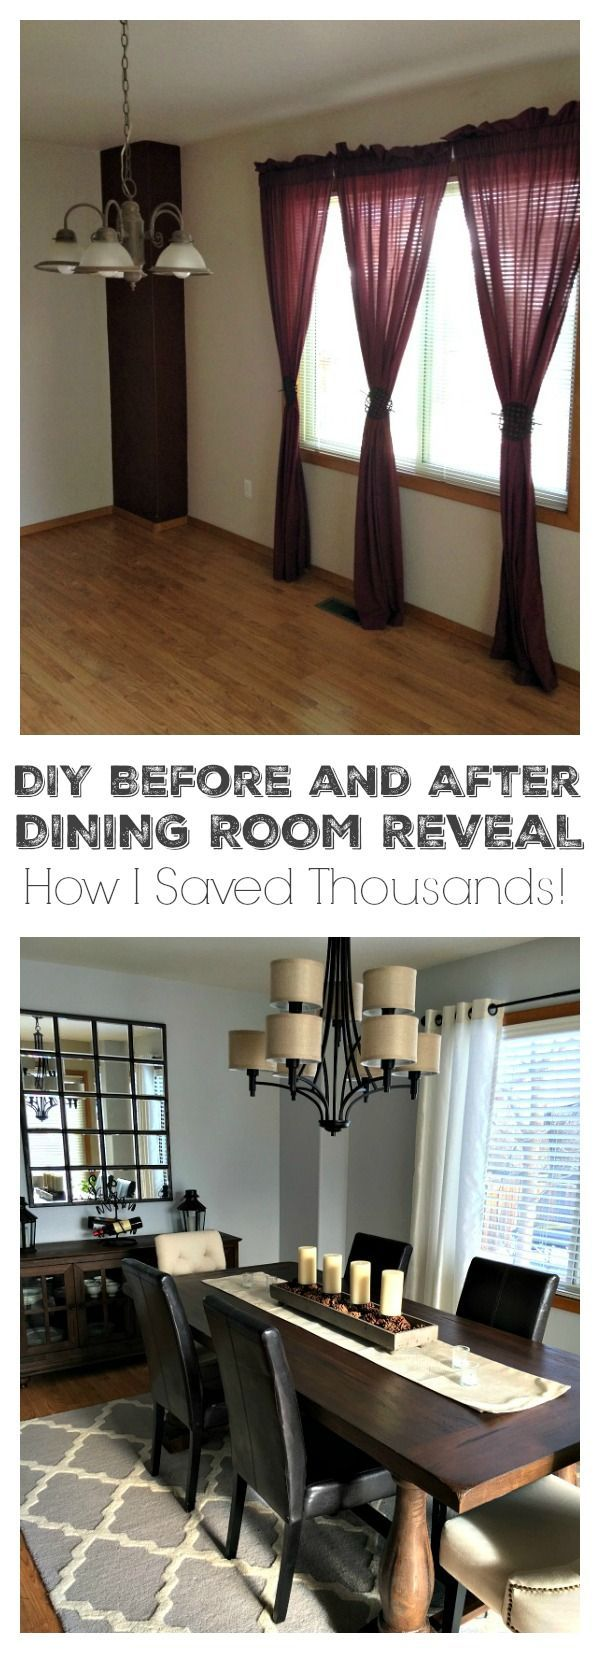 Home decorating diy projects remodeling a dining room for Diy dining room ideas